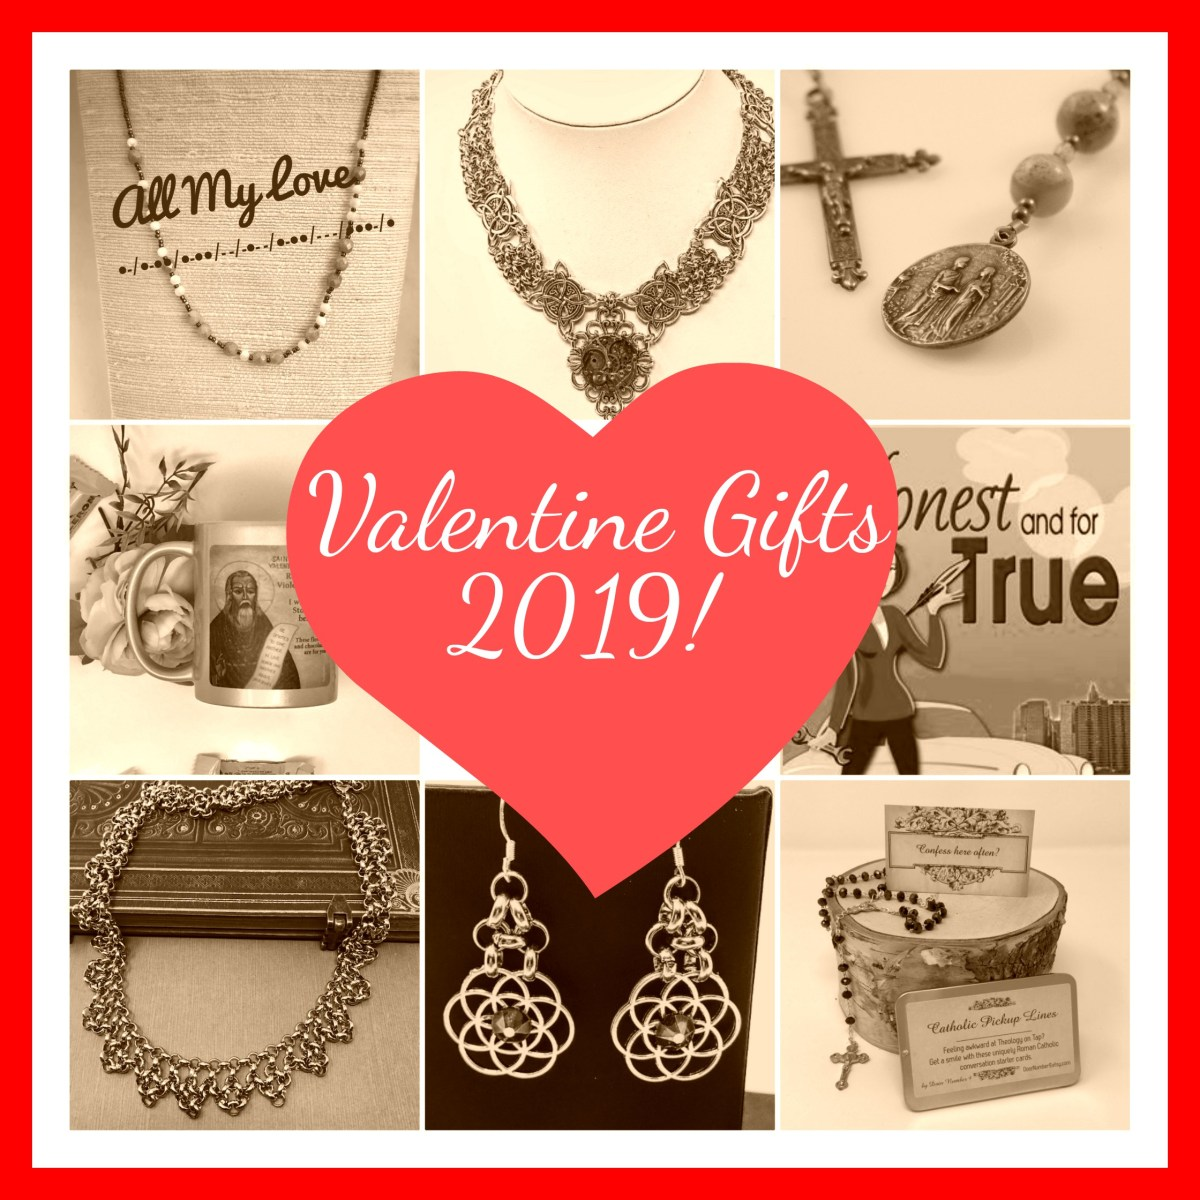 Valentine gift guide, 2019!